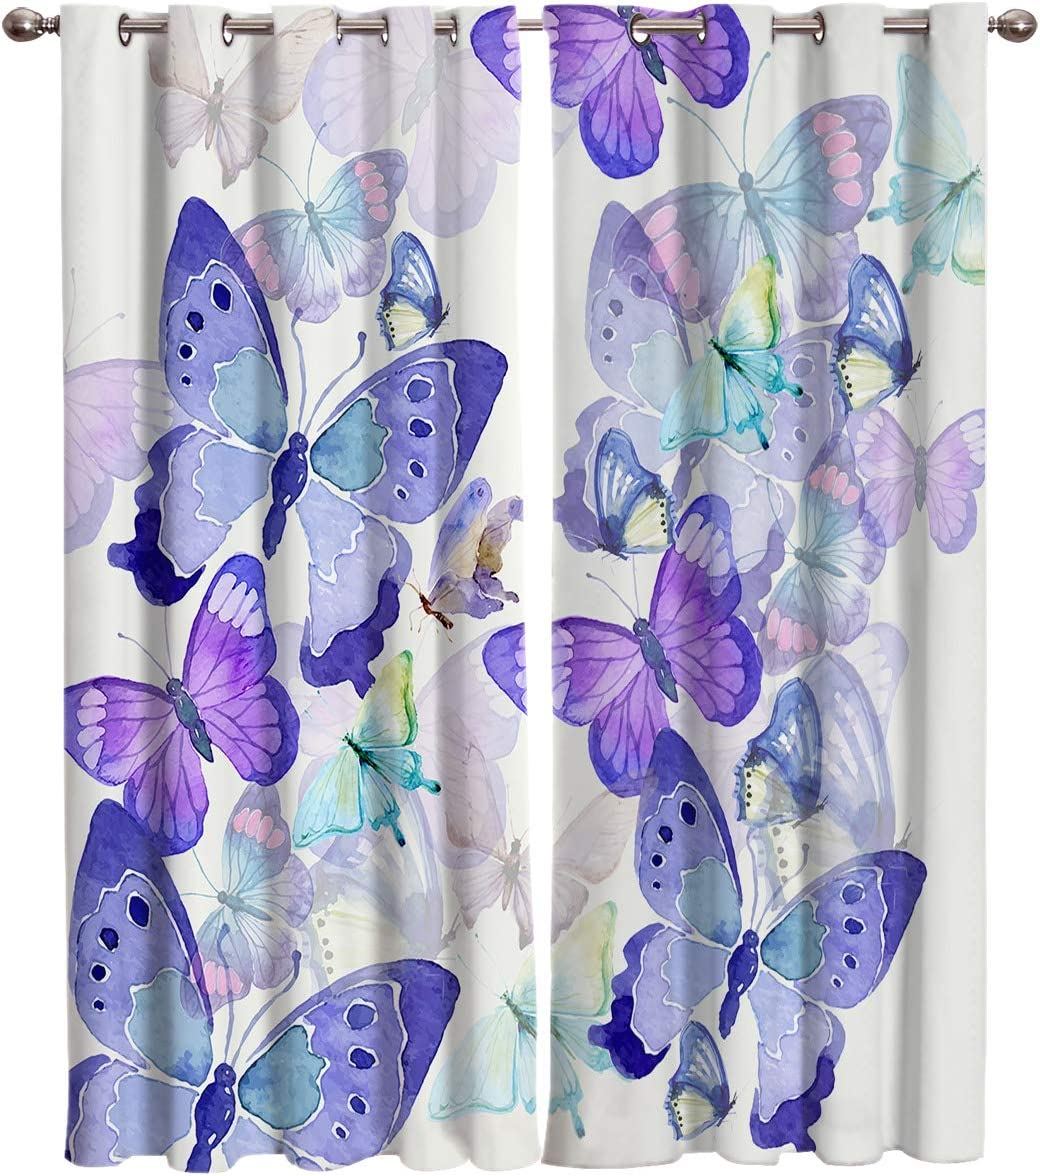 T H Home Draperies Curtains, Dazzling Colorful Butterfly Window Curtain, 2 Panel Curtains for Sliding Glass Door Bedroom Living Room, 104 W by 96 L